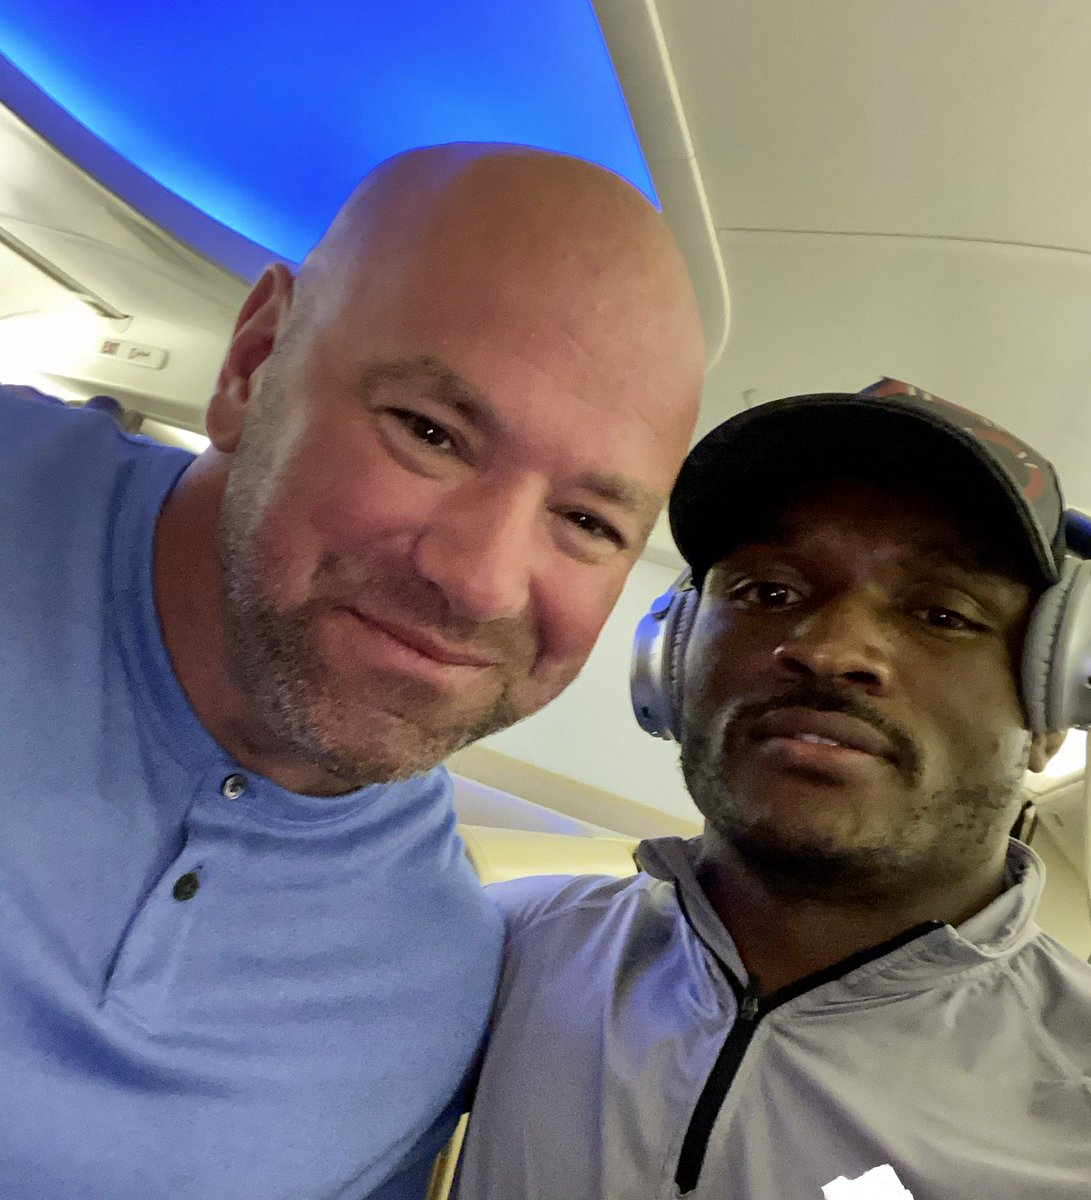 Dana's personal hitman is on the way to #fightisland #ufc251 https://t.co/mGT31anqoW